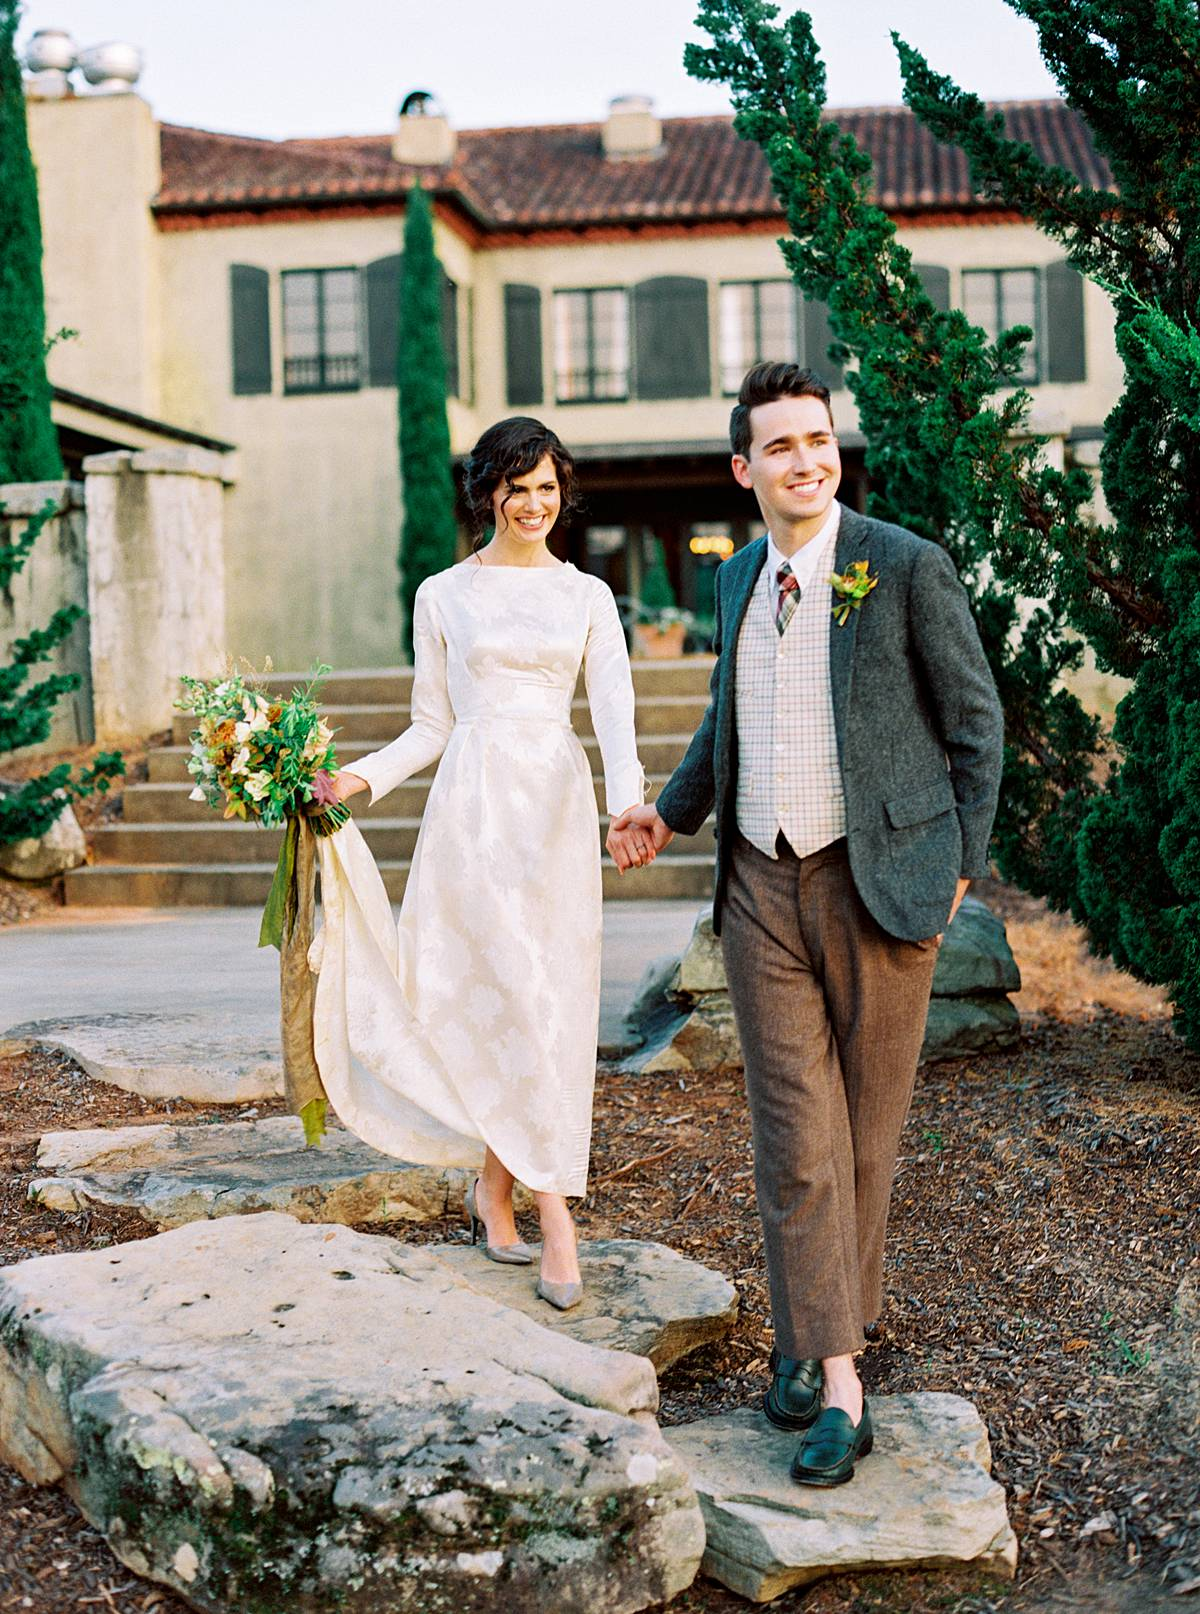 northern michigan elopement photography of bride and groom in vintage wedding clothes by flm wedding photographer brian d smith photography